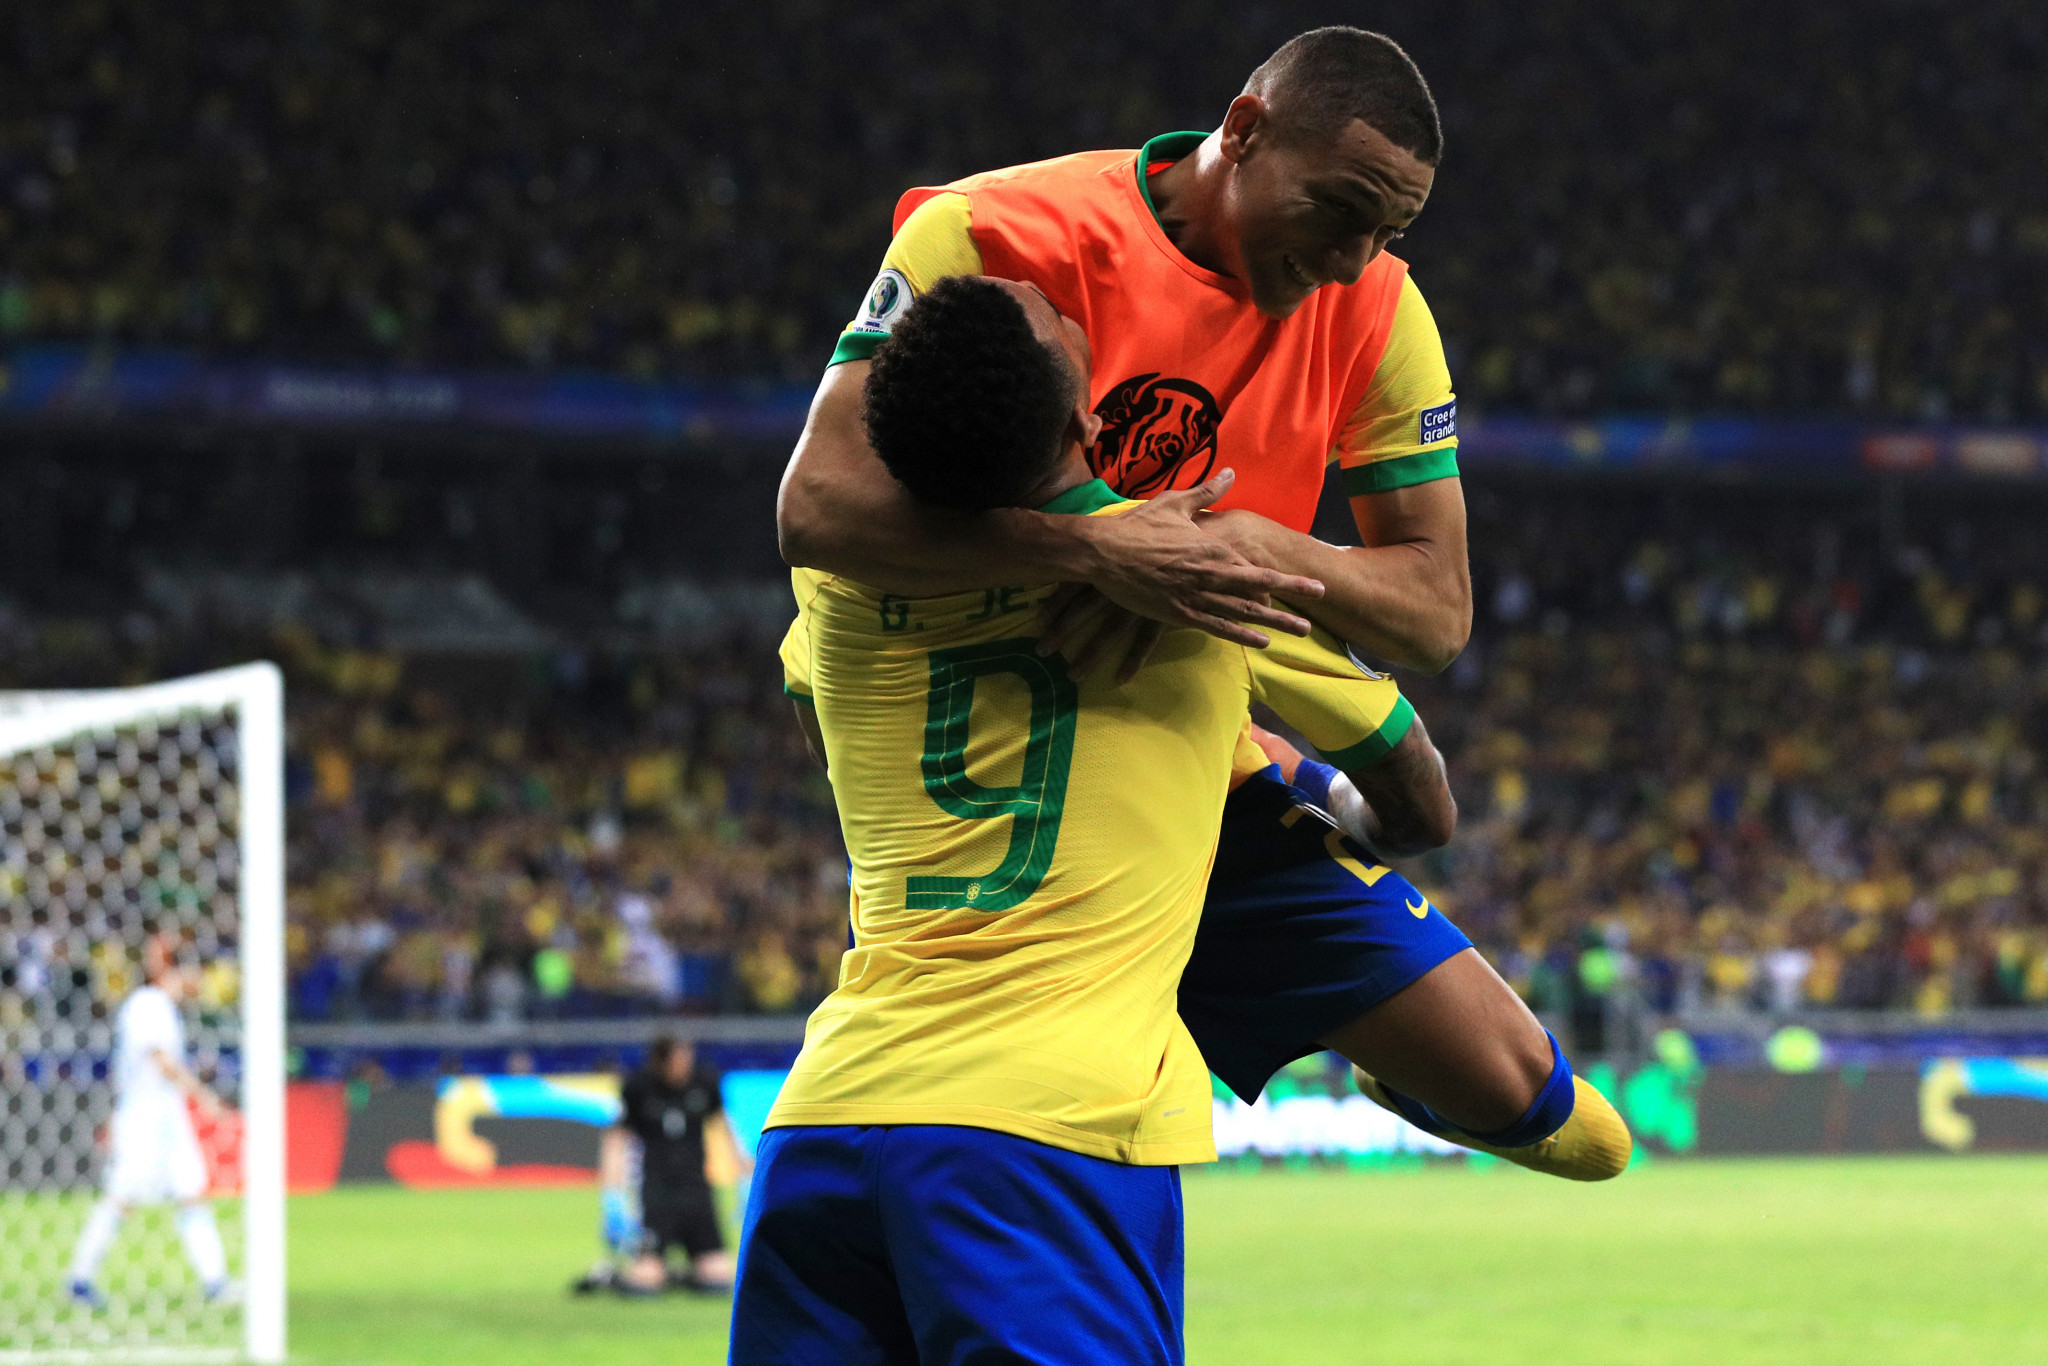 Brazil beat Argentina to reach Copa América final